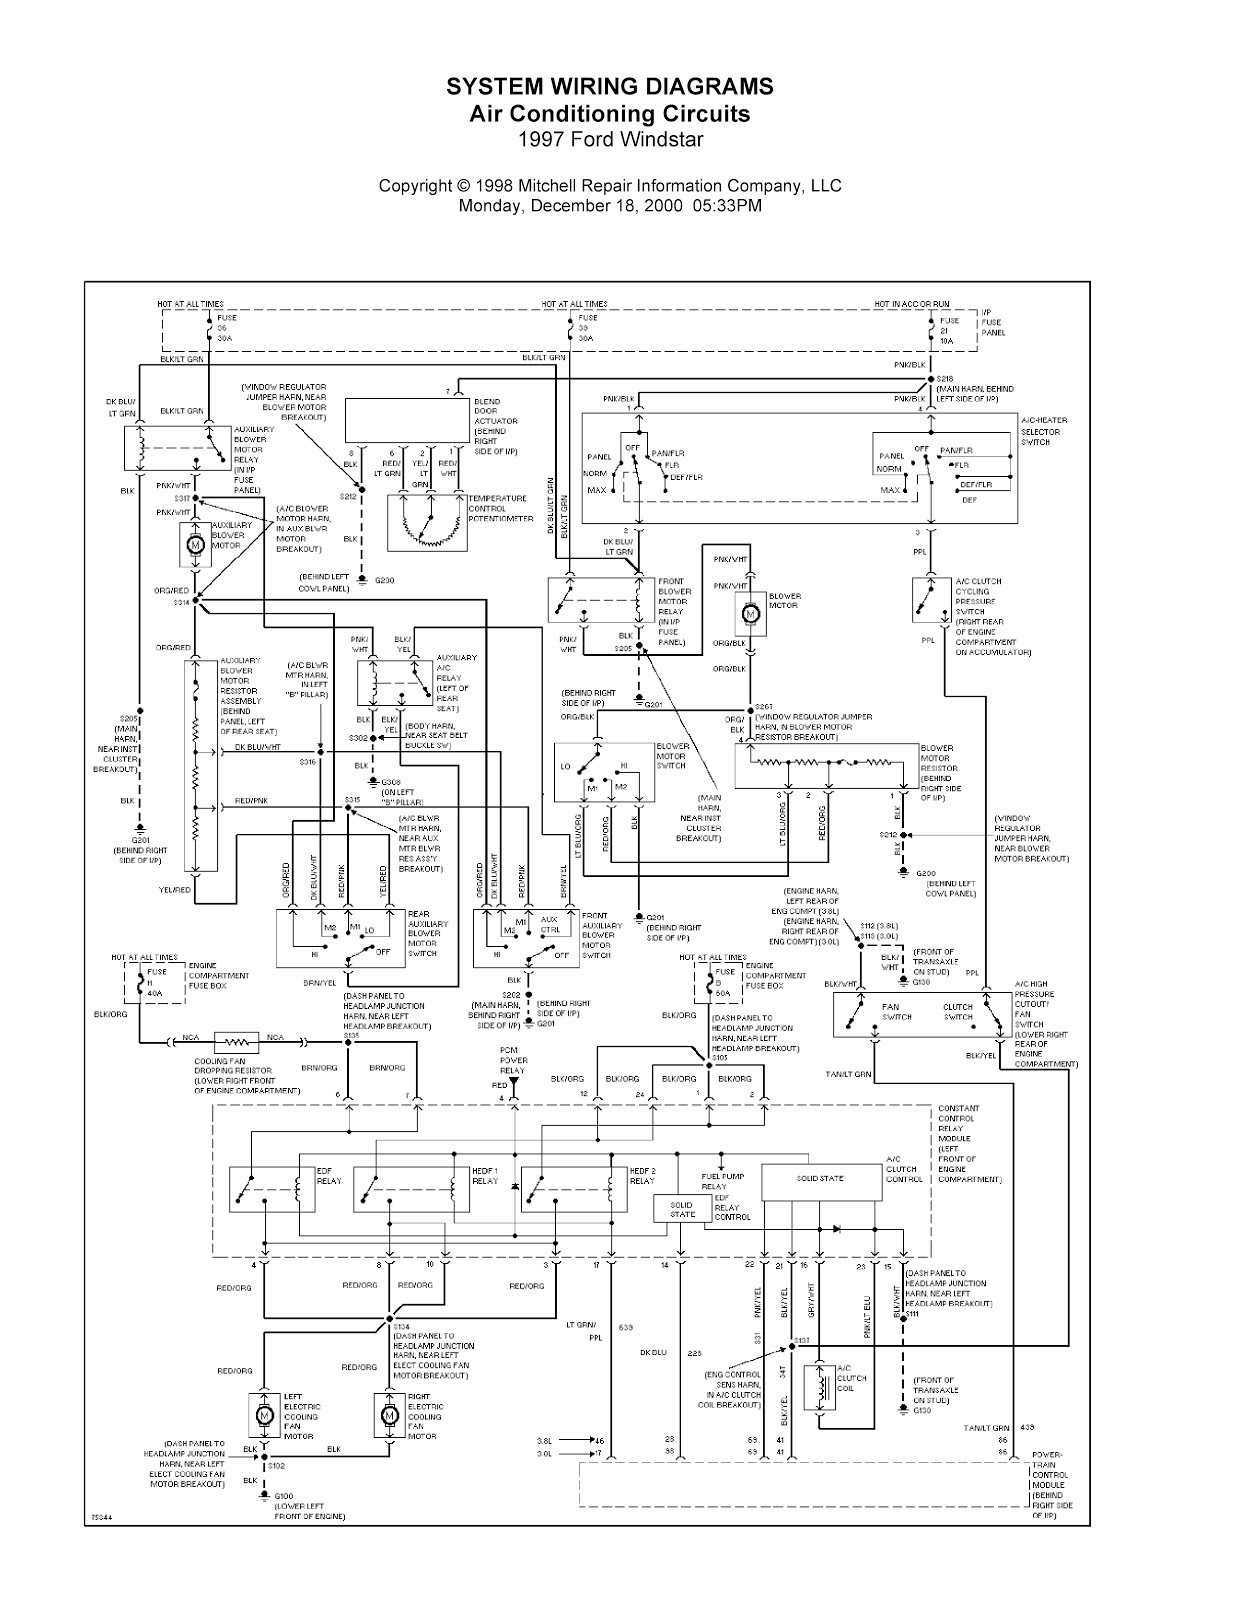 1997 Mercury Sable Engine Diagram Wiring Library 2001 Ford Windstar Plete System Diagrams Rh Wiringdiagramsolution